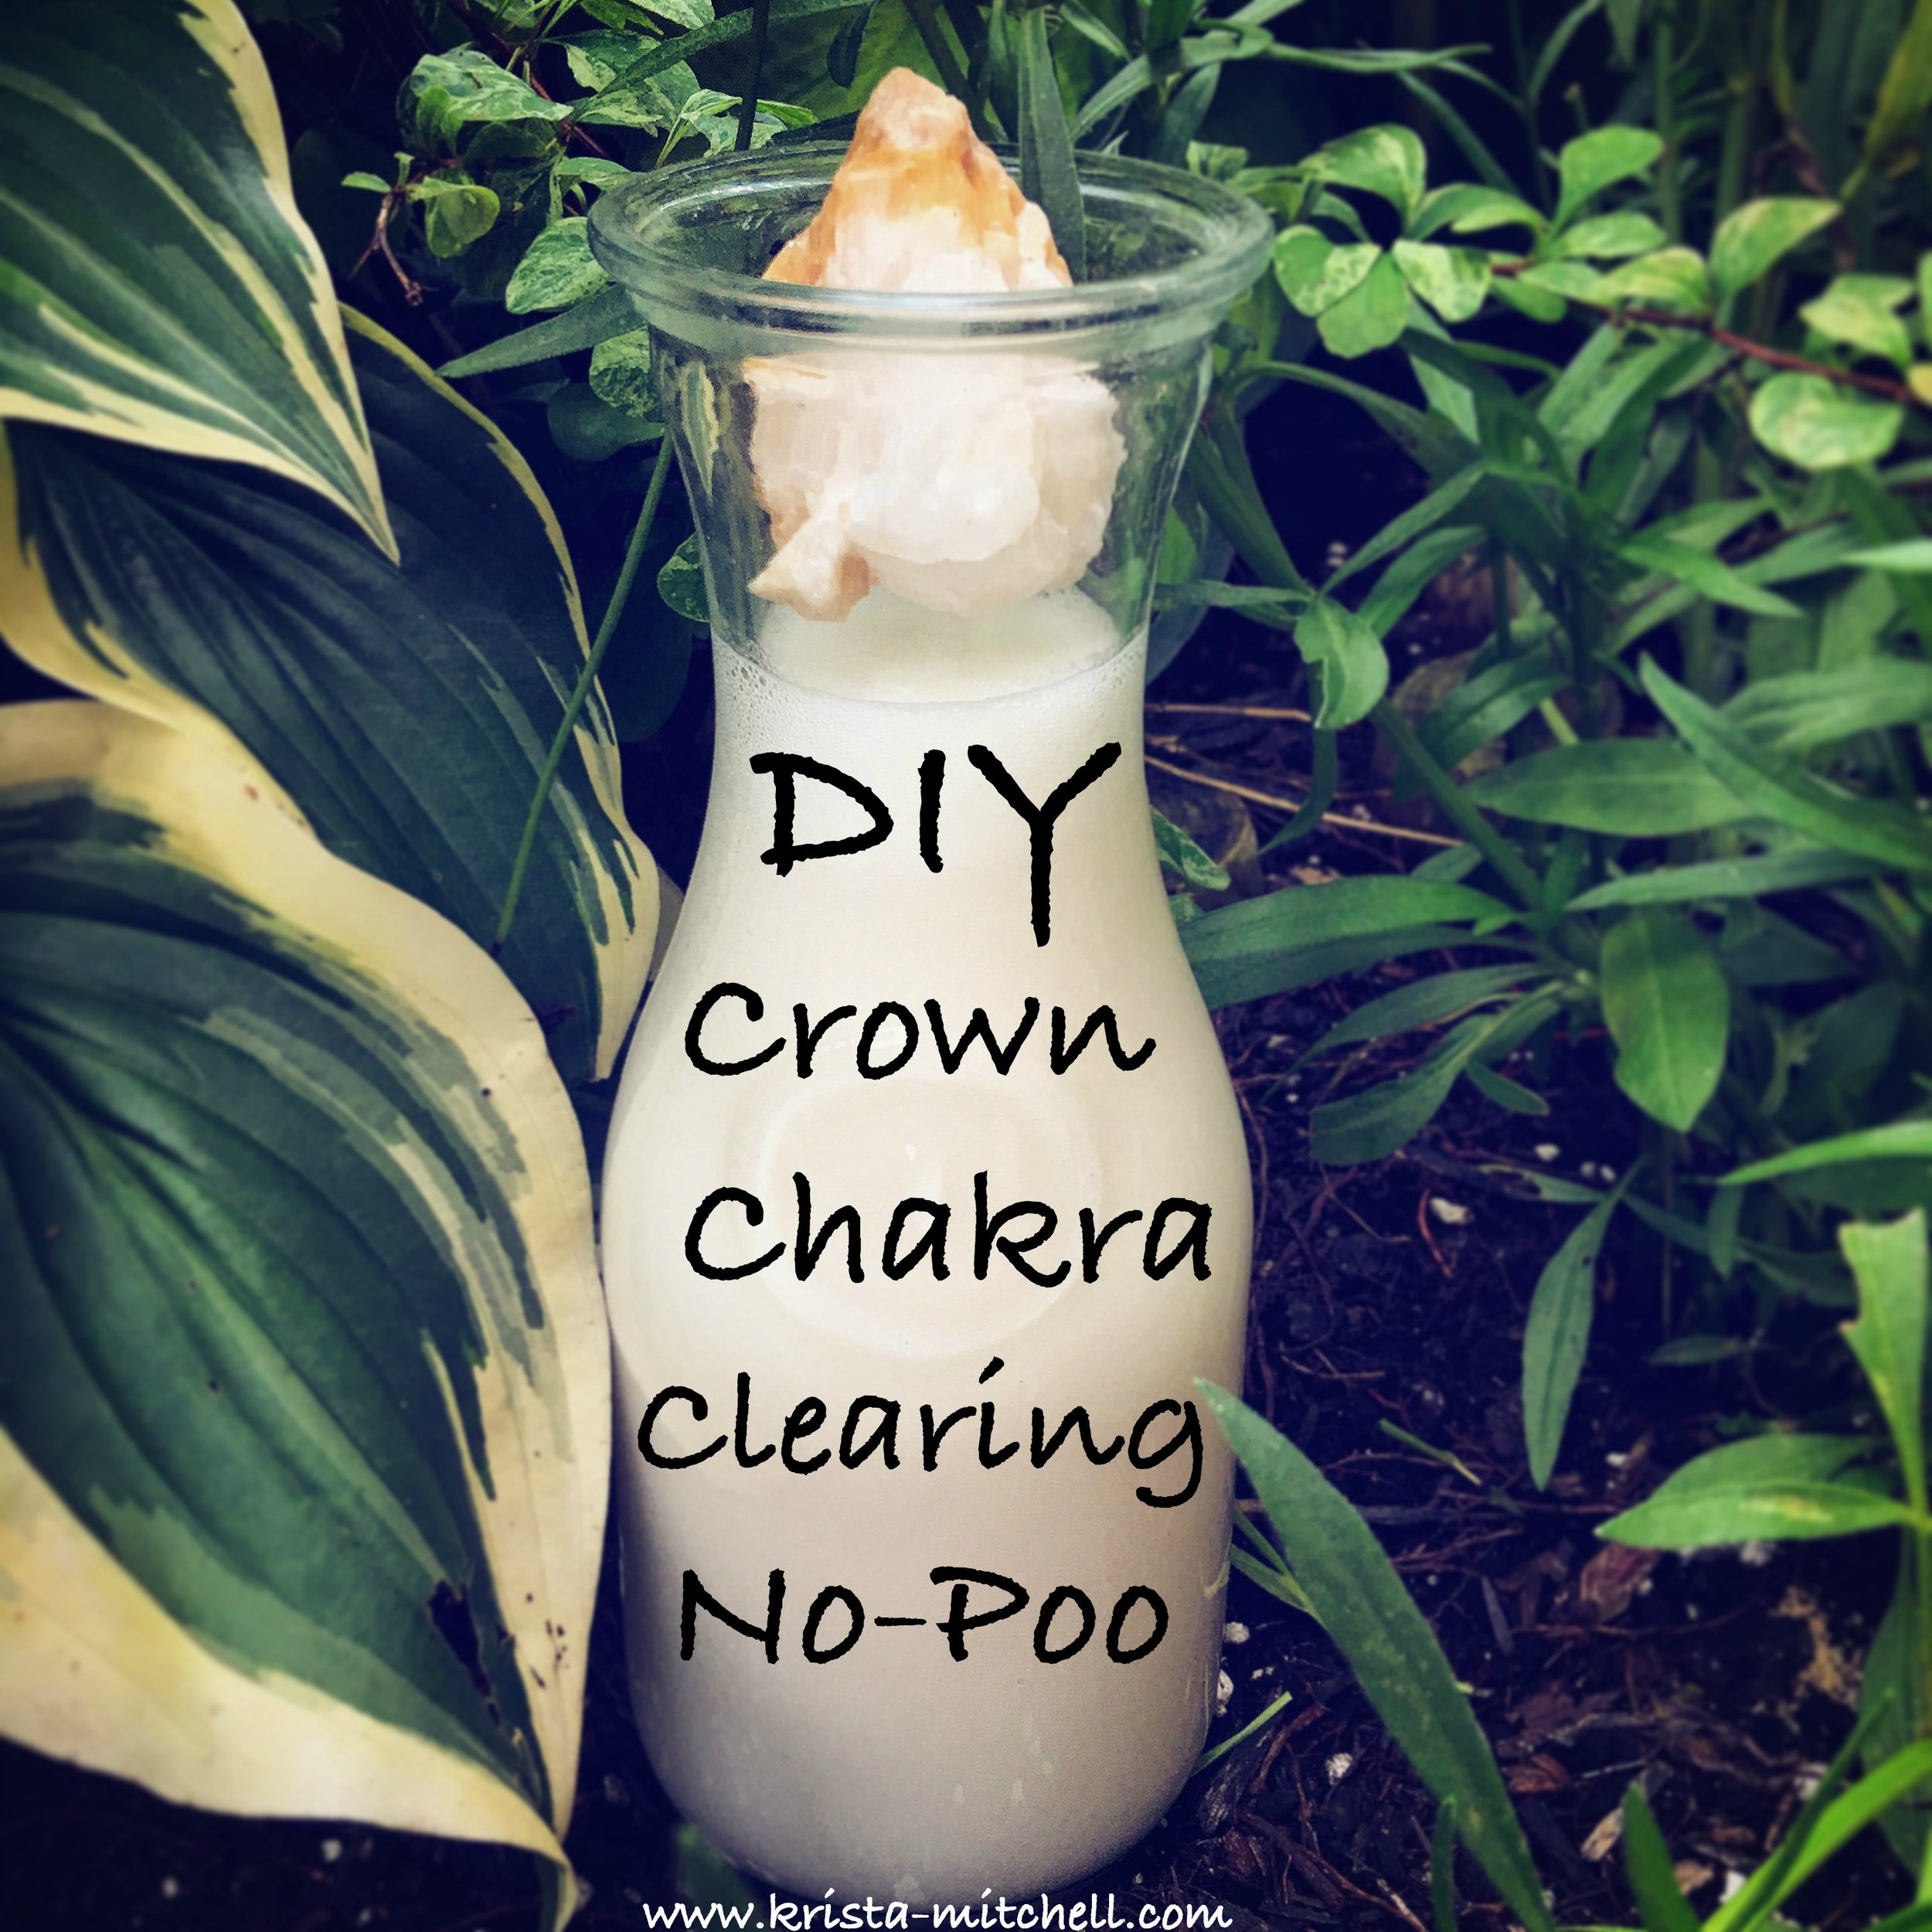 diy crown chakra clearing no poo / krista-mitchell.com